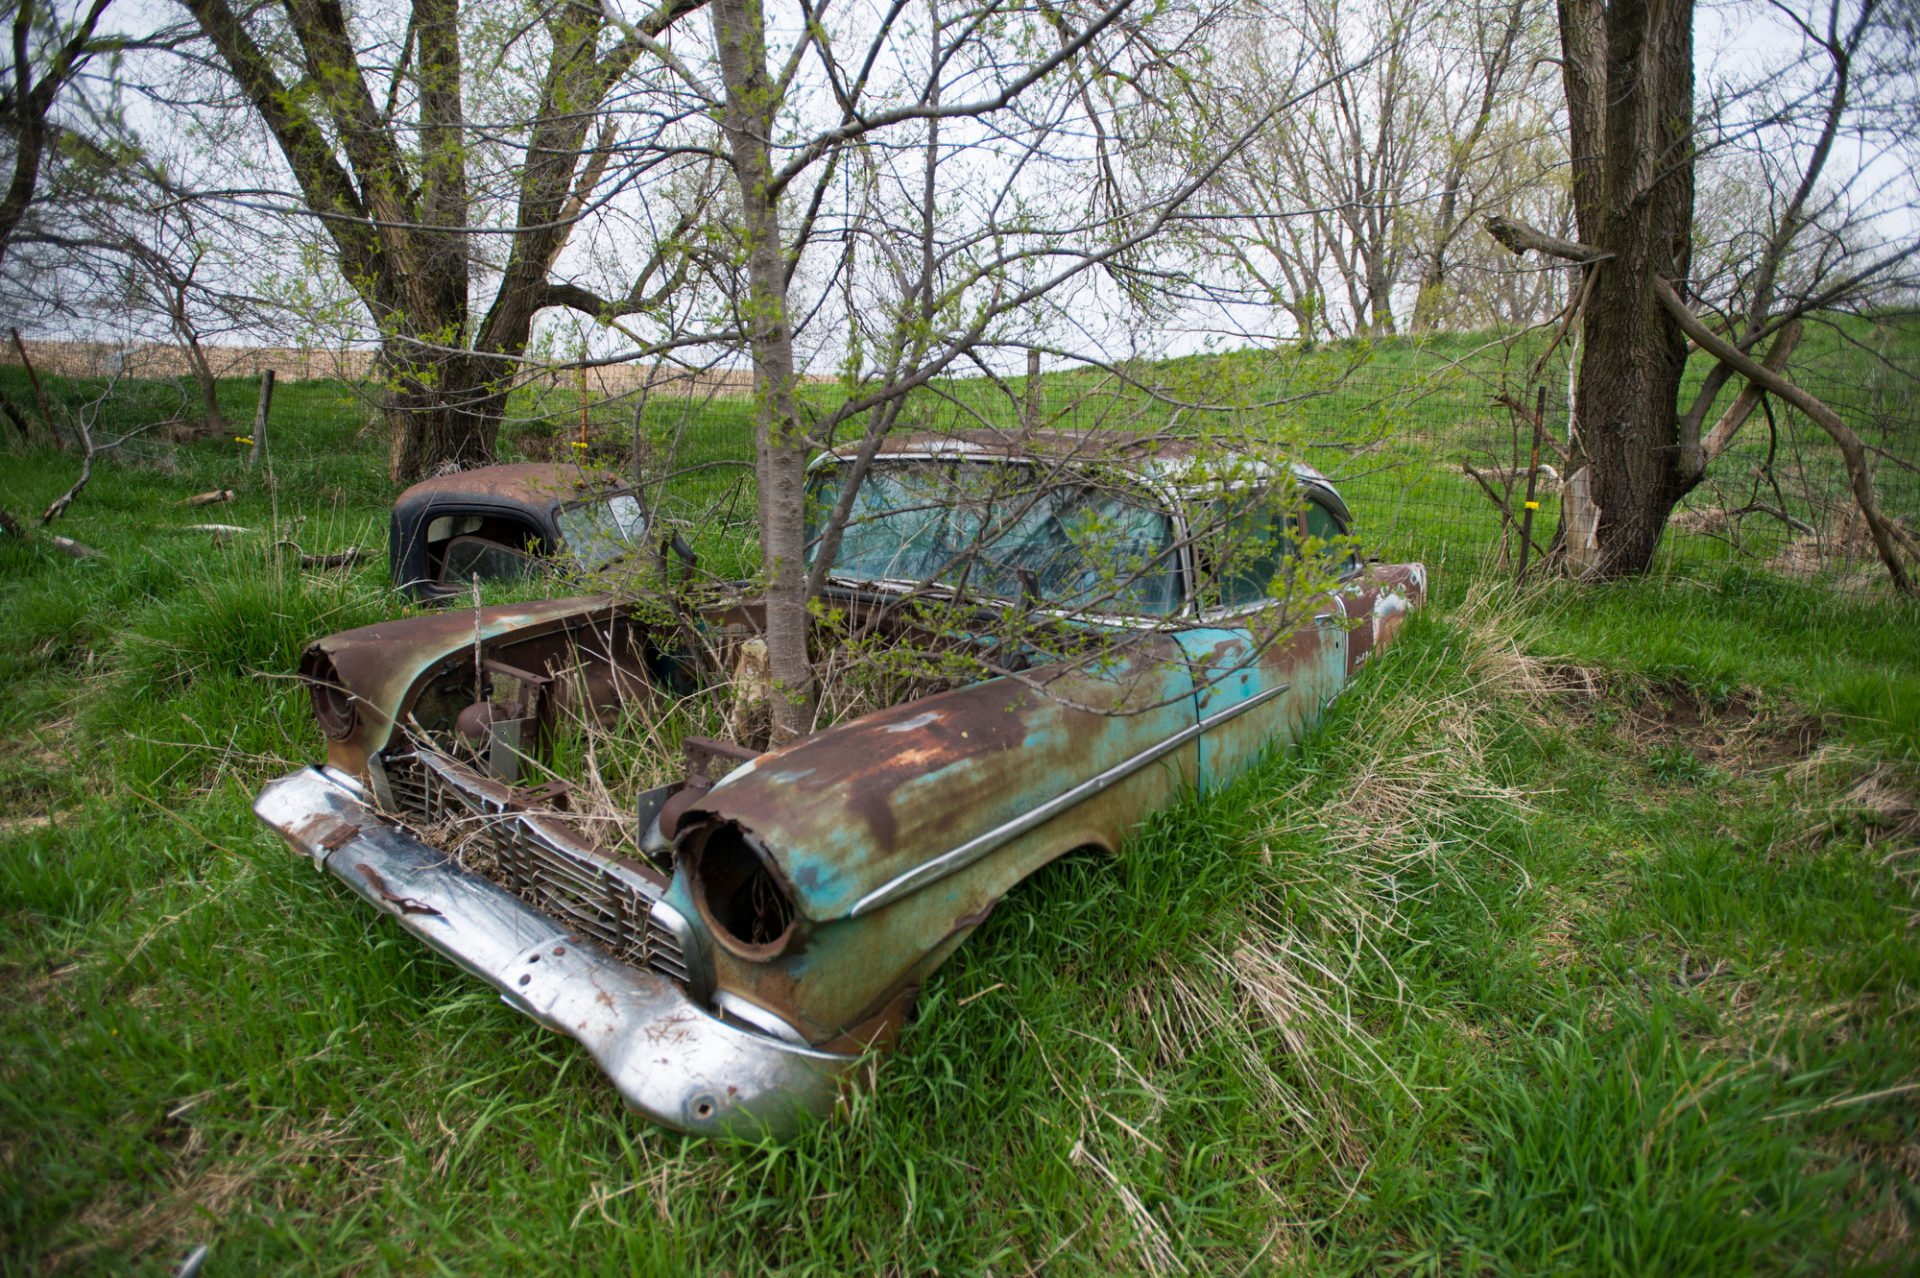 Photo: A tree growing through an old car.